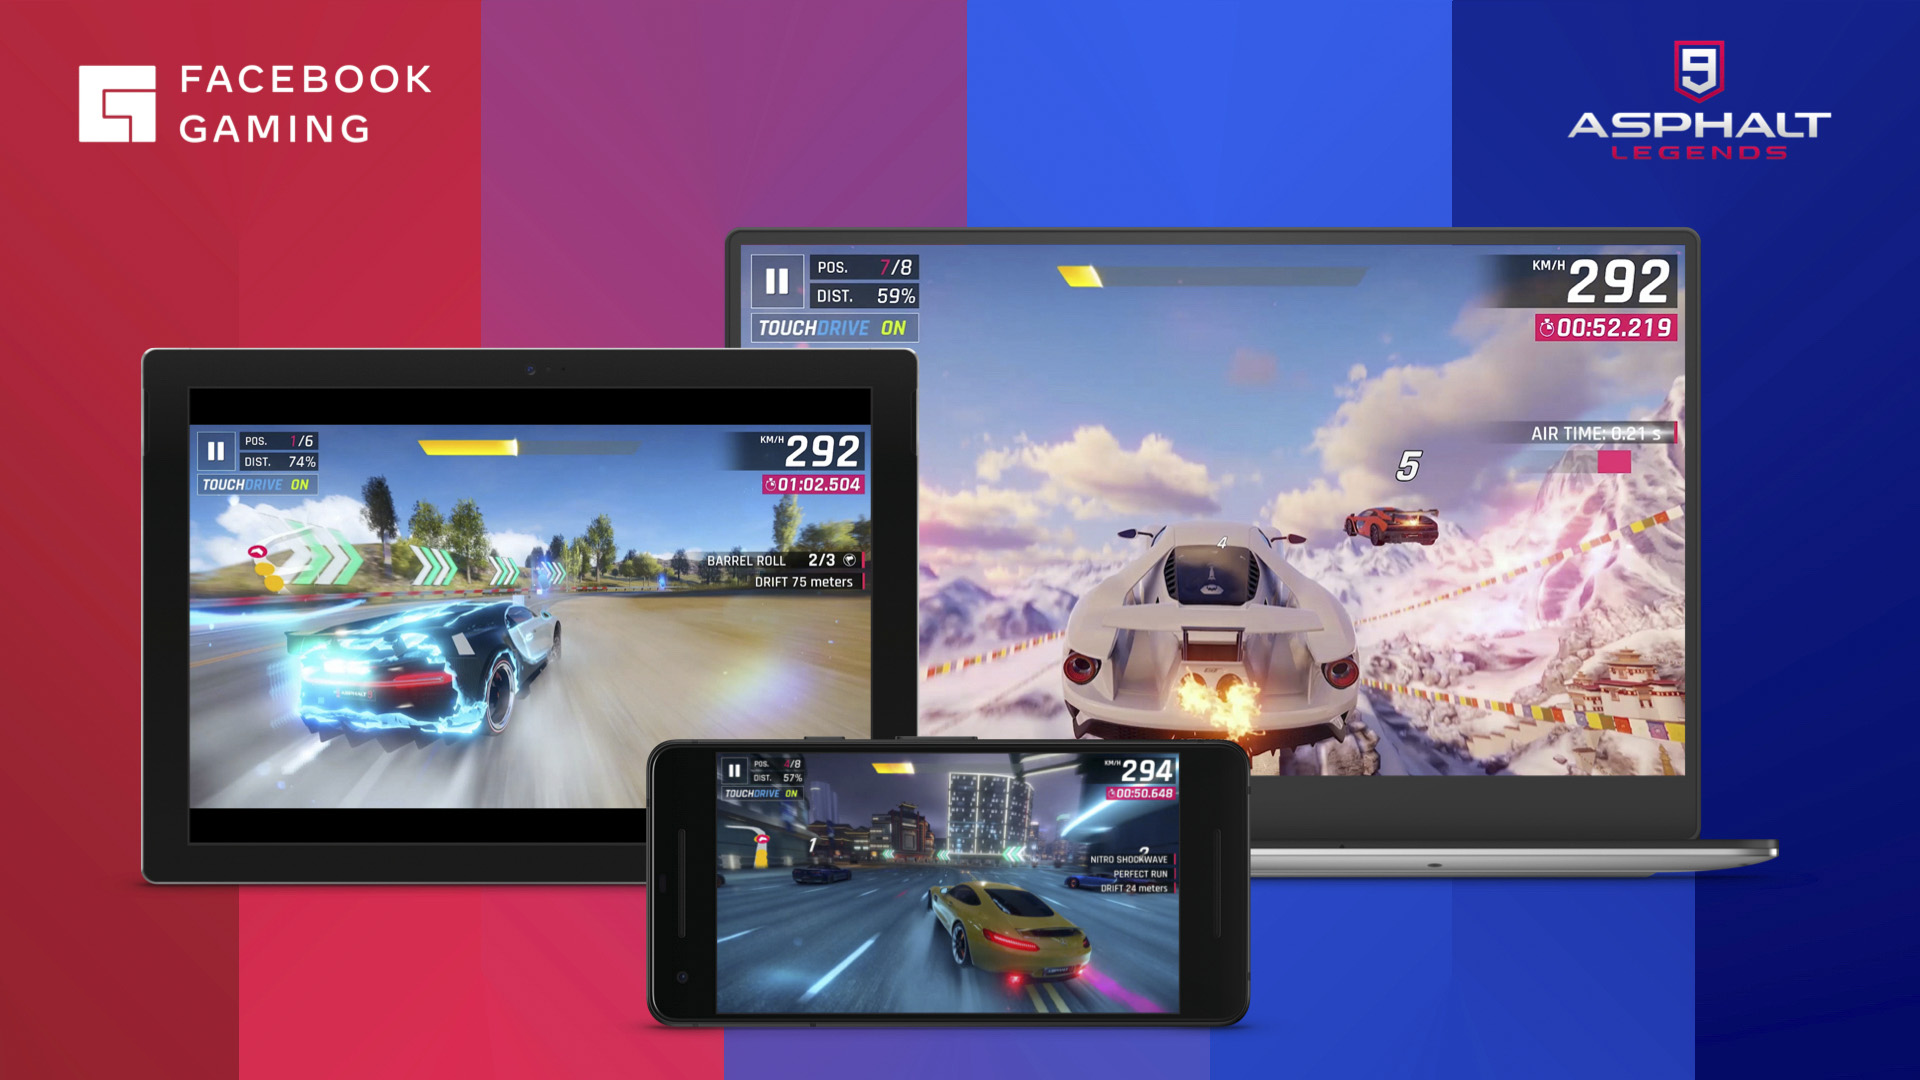 Facebook Introduces Cloud Gaming To Apple Devices Through Web App